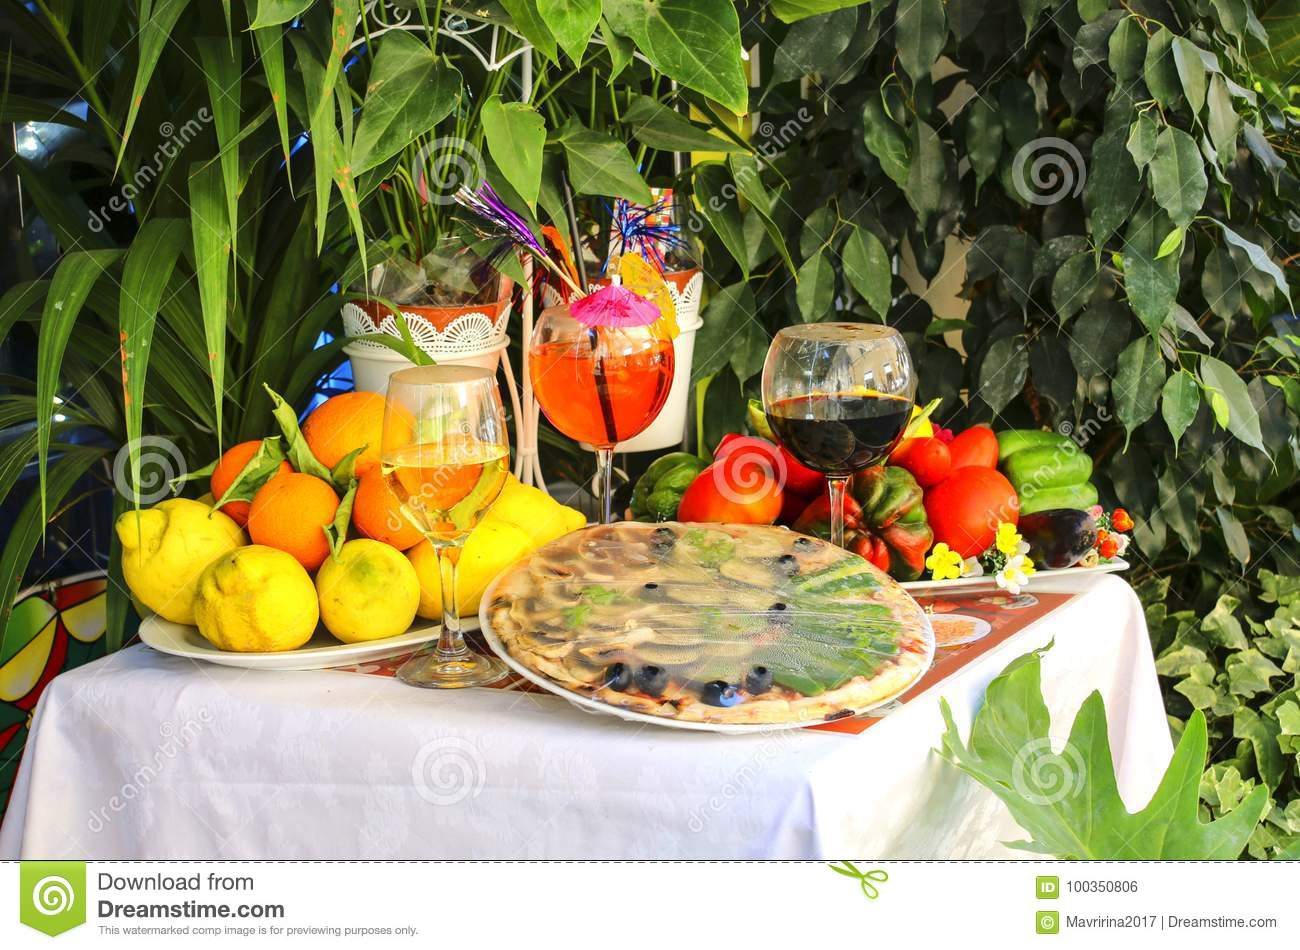 Table decorated with pizza, fruit and wine traditional Italian